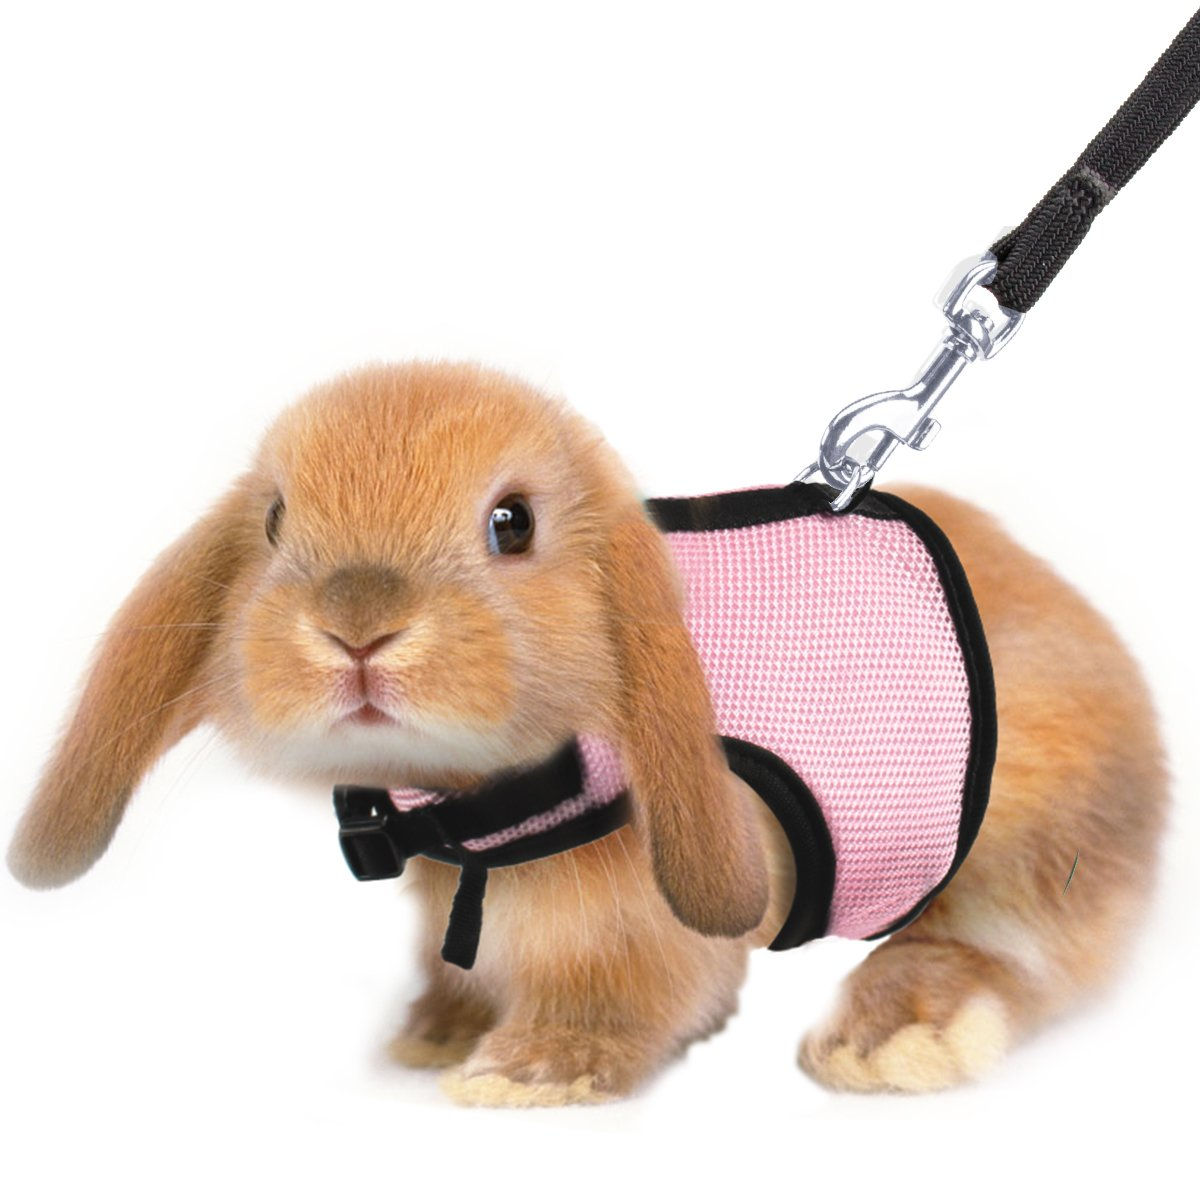 MEWTOGO 2 pcs Adjustable and Breathable Bunny Harness with M and L Size